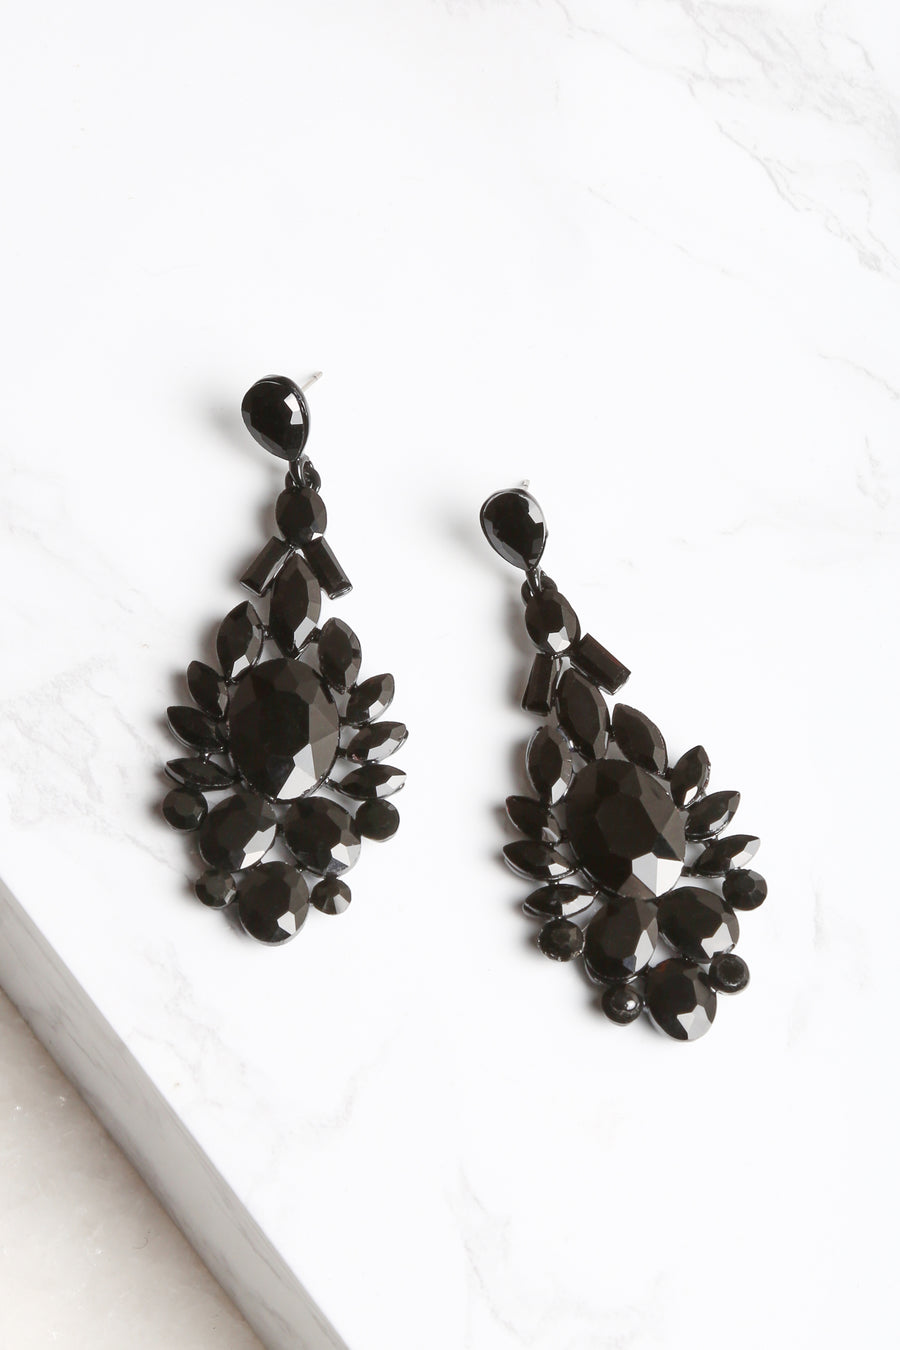 All Black Everything Earrings - NEM Fashion Store